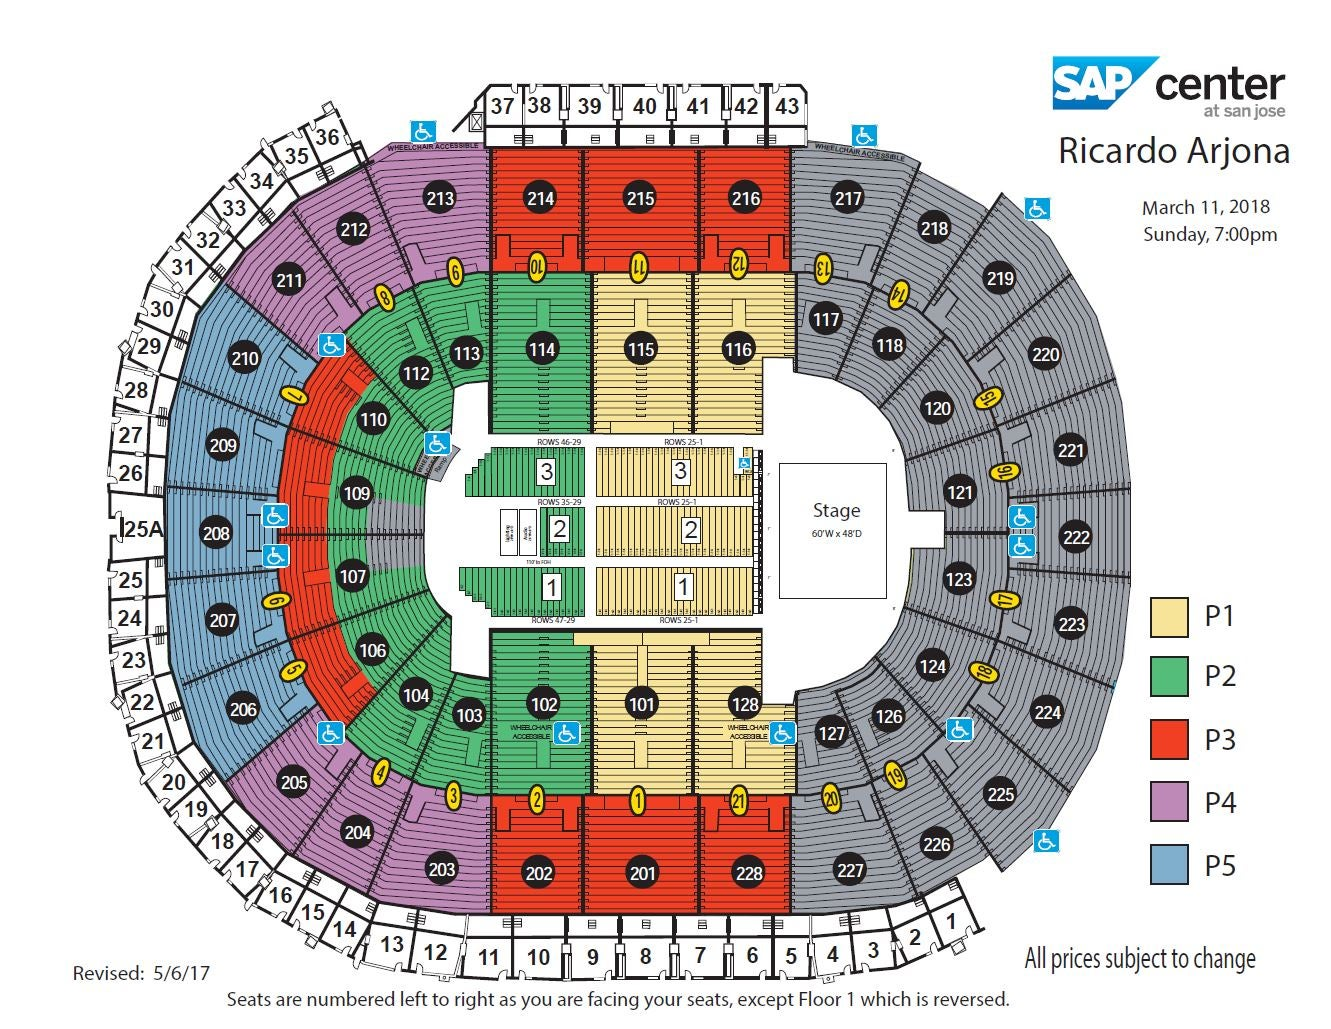 Ricardo-Seating-3580f1e8ea Sap Center Seating Map on sap center tickets, sap seating-chart hockey, sap concert seating, sap center sharks seating-chart, sap center events, sap theater seating, sap center hotels, sap center suites, sap center twitter, sap center santa clara, sap center parking, sap center san jose, sap center schedule,